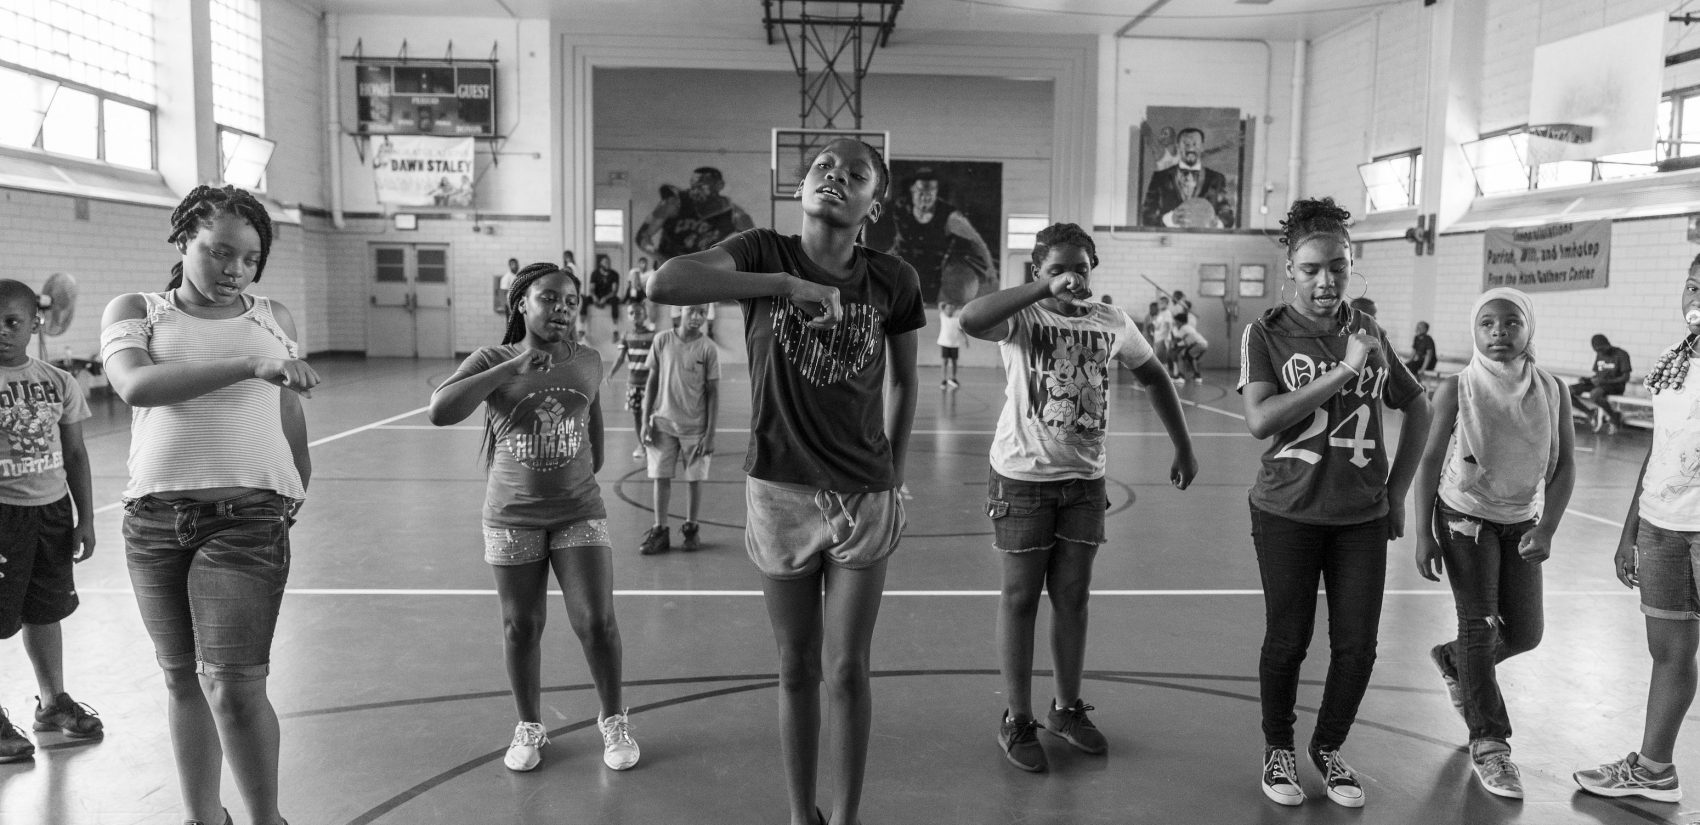 Girls practice a dance routine during day camp at Gathers in July 2018. (Jessica Kourkounis for Keystone Crossroads)